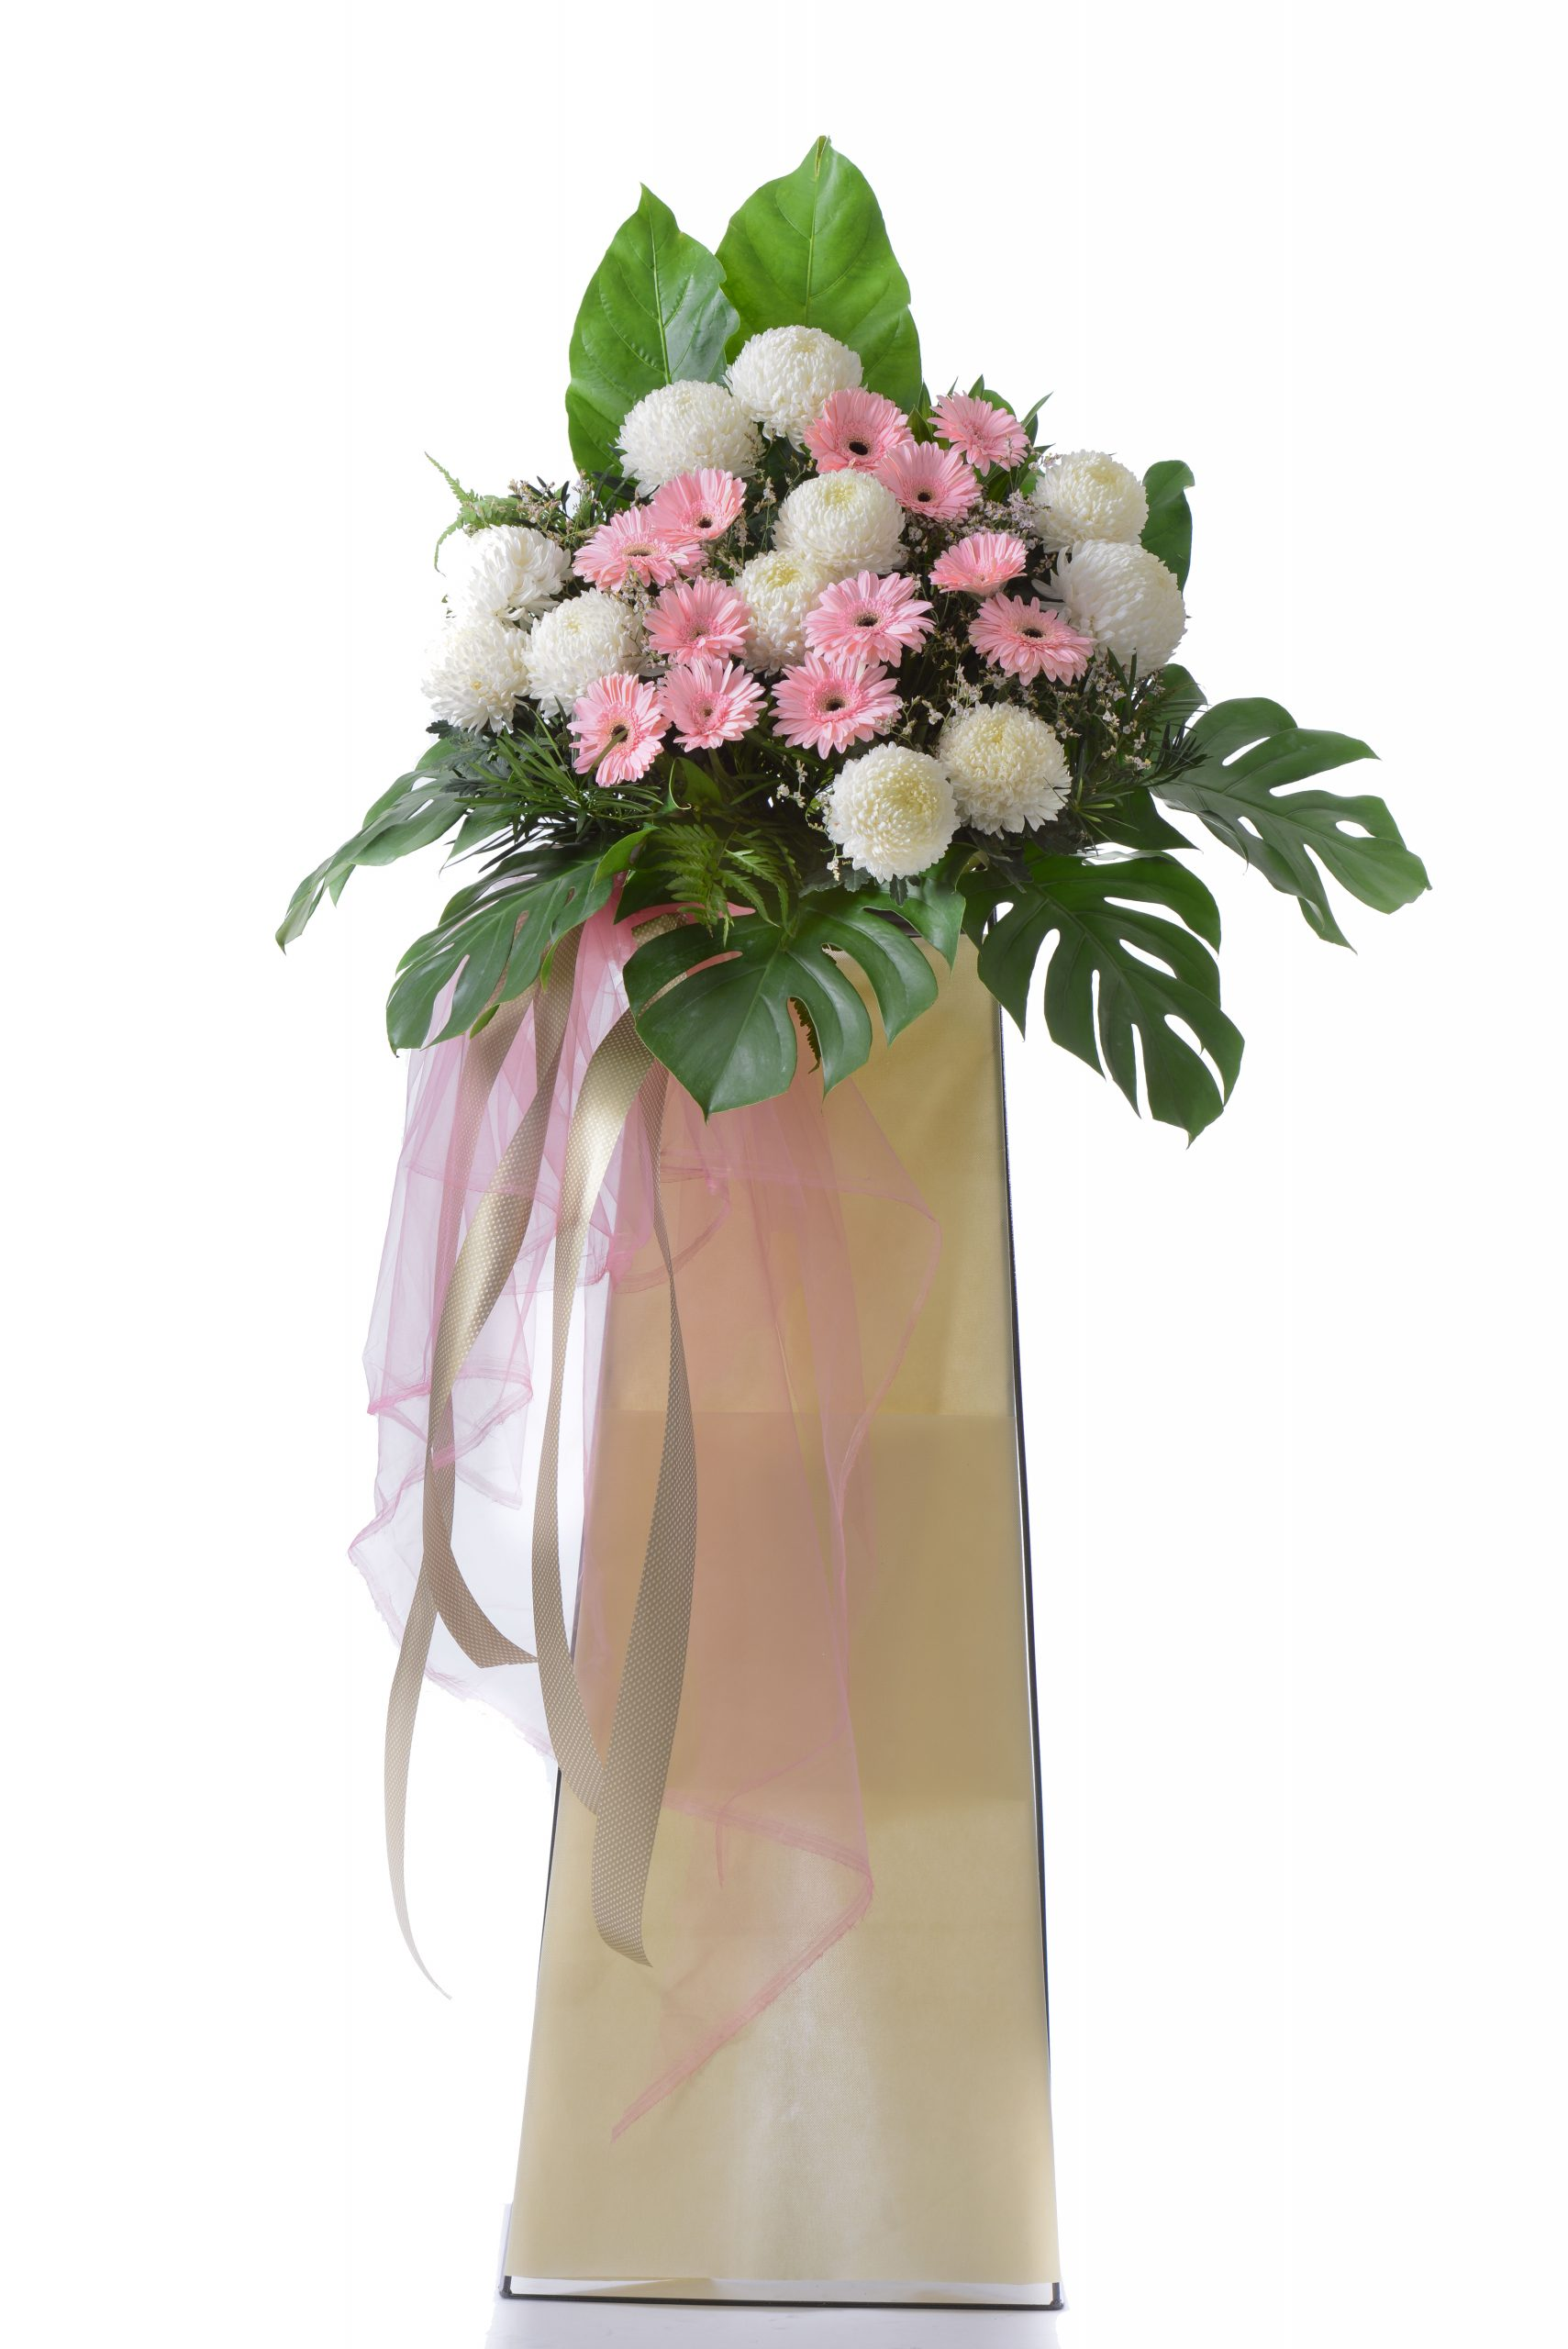 Tribute Spray funeral condolences flower stand | Condolence Flowers | Eska Creative Gifting